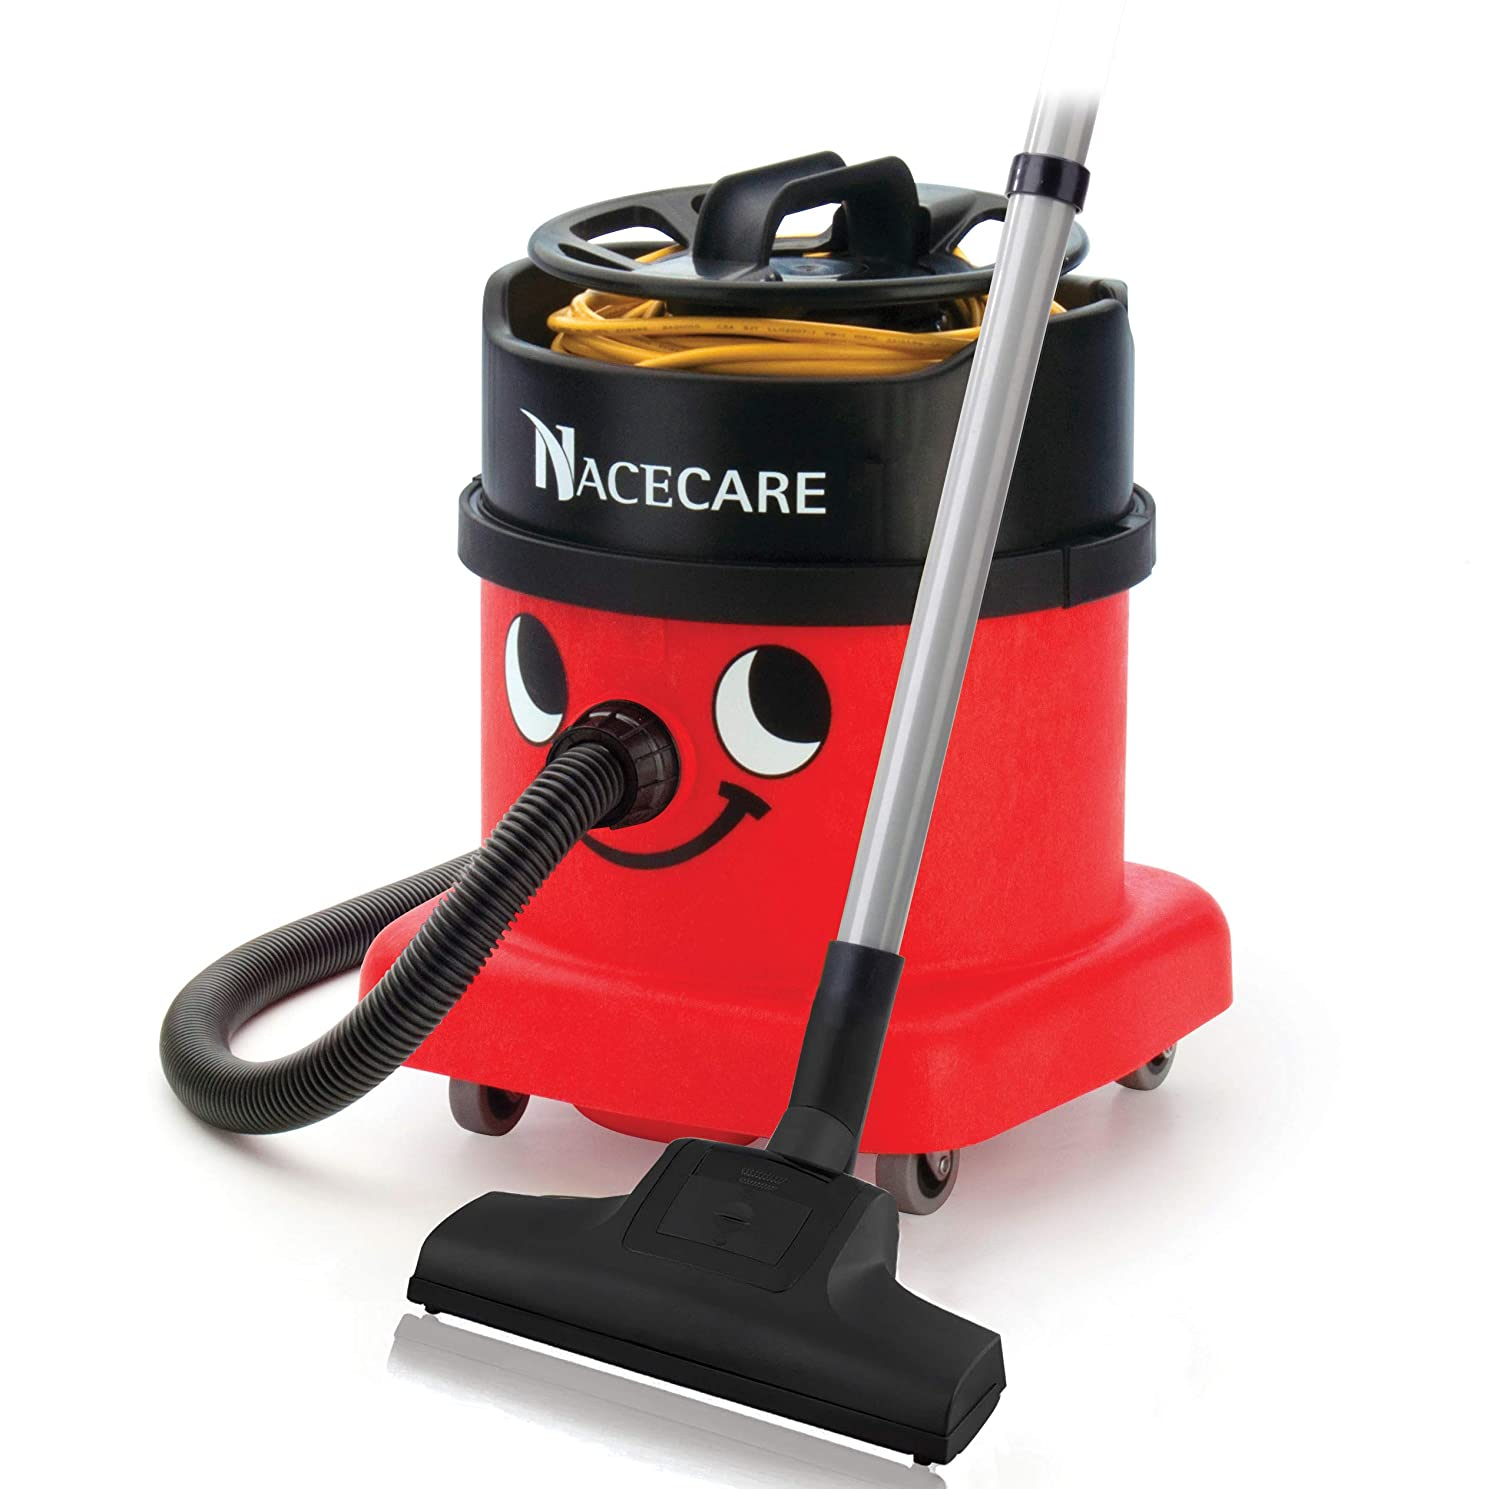 NaceCare 8027121 PSP380 Very popular Canister Vacuum gal Kit Popular overseas 4.5 AH3 with